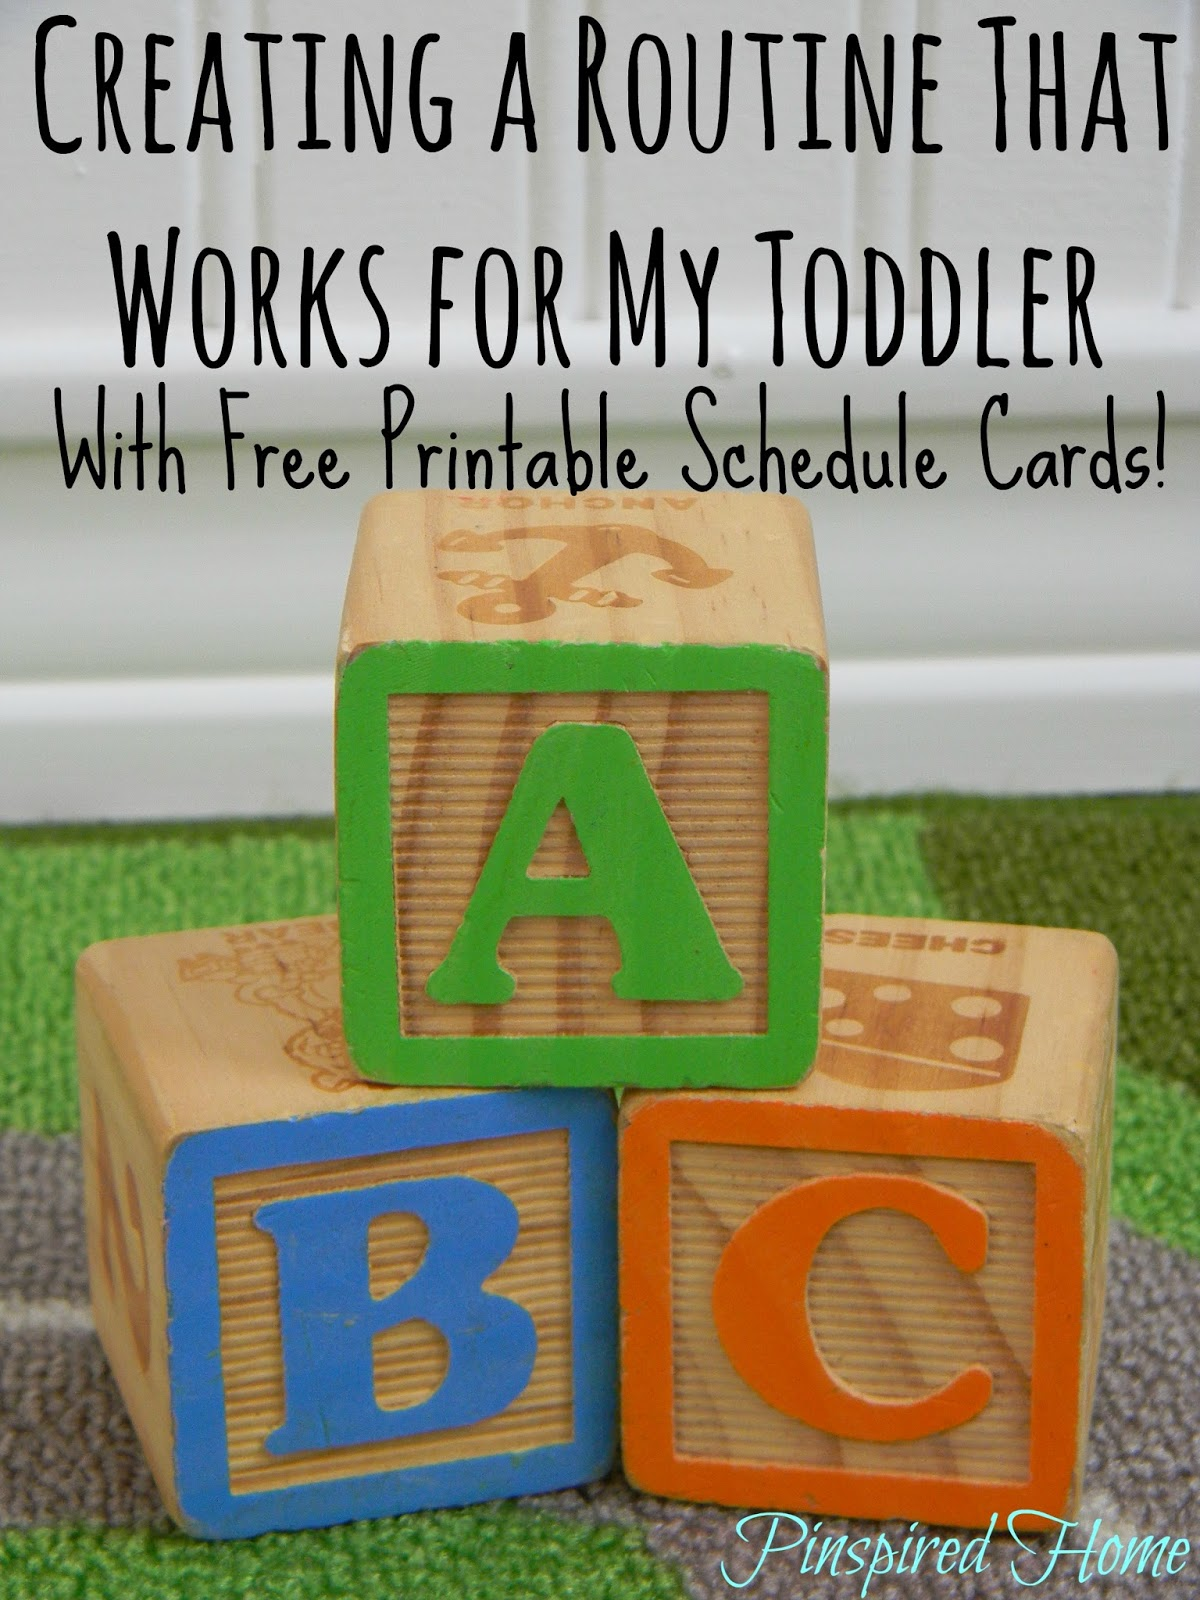 http://pinspiredhome.blogspot.com/2014/09/toddler-routine-free-printable.html